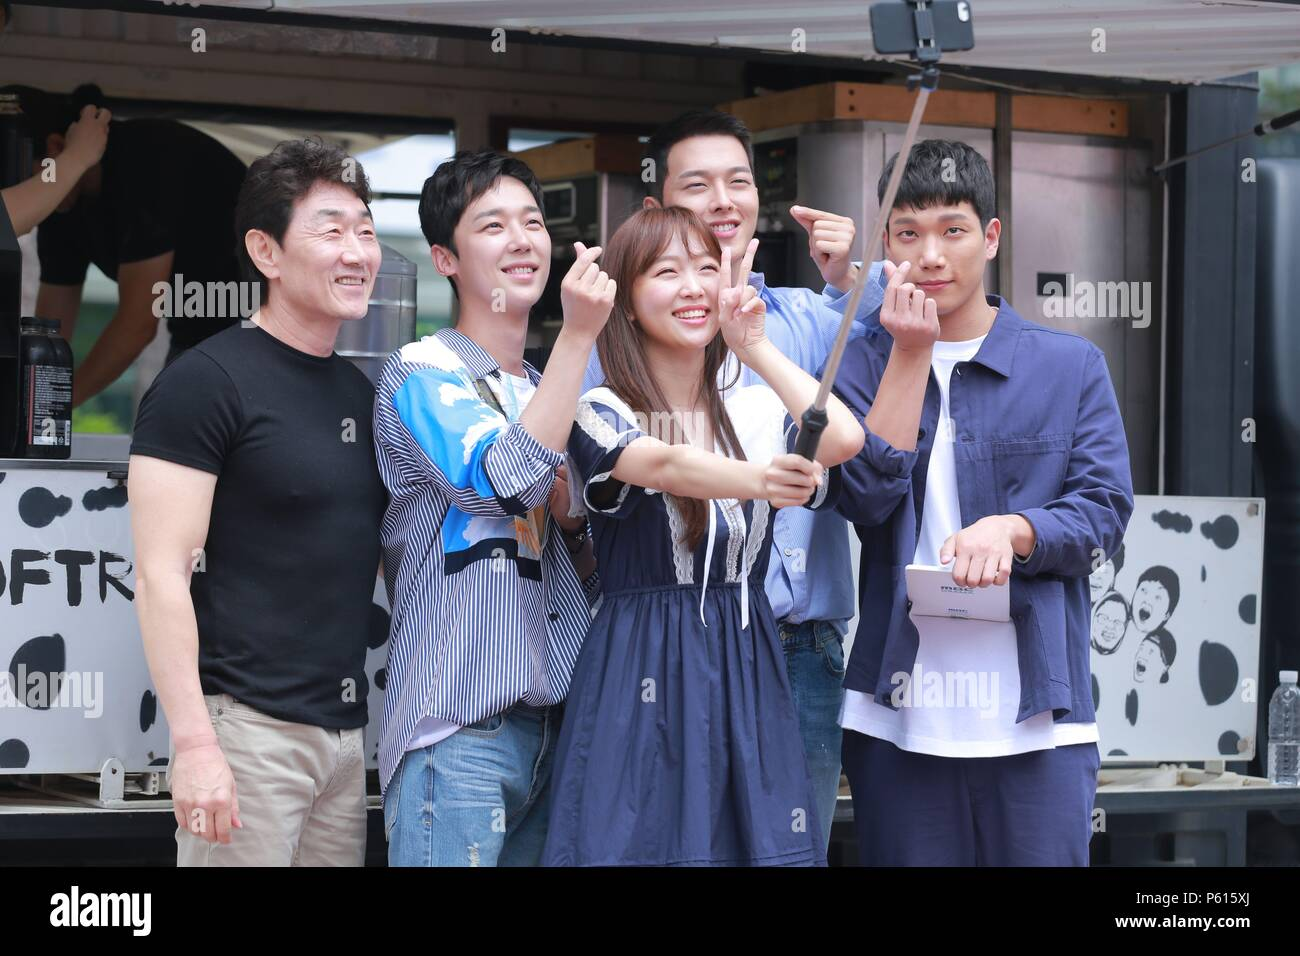 Seoul, Korea. 27th June, 2018. Jang Ki Yong, Jin Ki-joo, Heo Joon-ho, Kim Kyung Nam, Yoon Jong-hoon etc. promoted for their new TV sereies 'Come to hold me' in Seoul, Korea on 27th June, 2018.(China and Korea Rights Out) Credit: TopPhoto/Alamy Live News Stock Photo